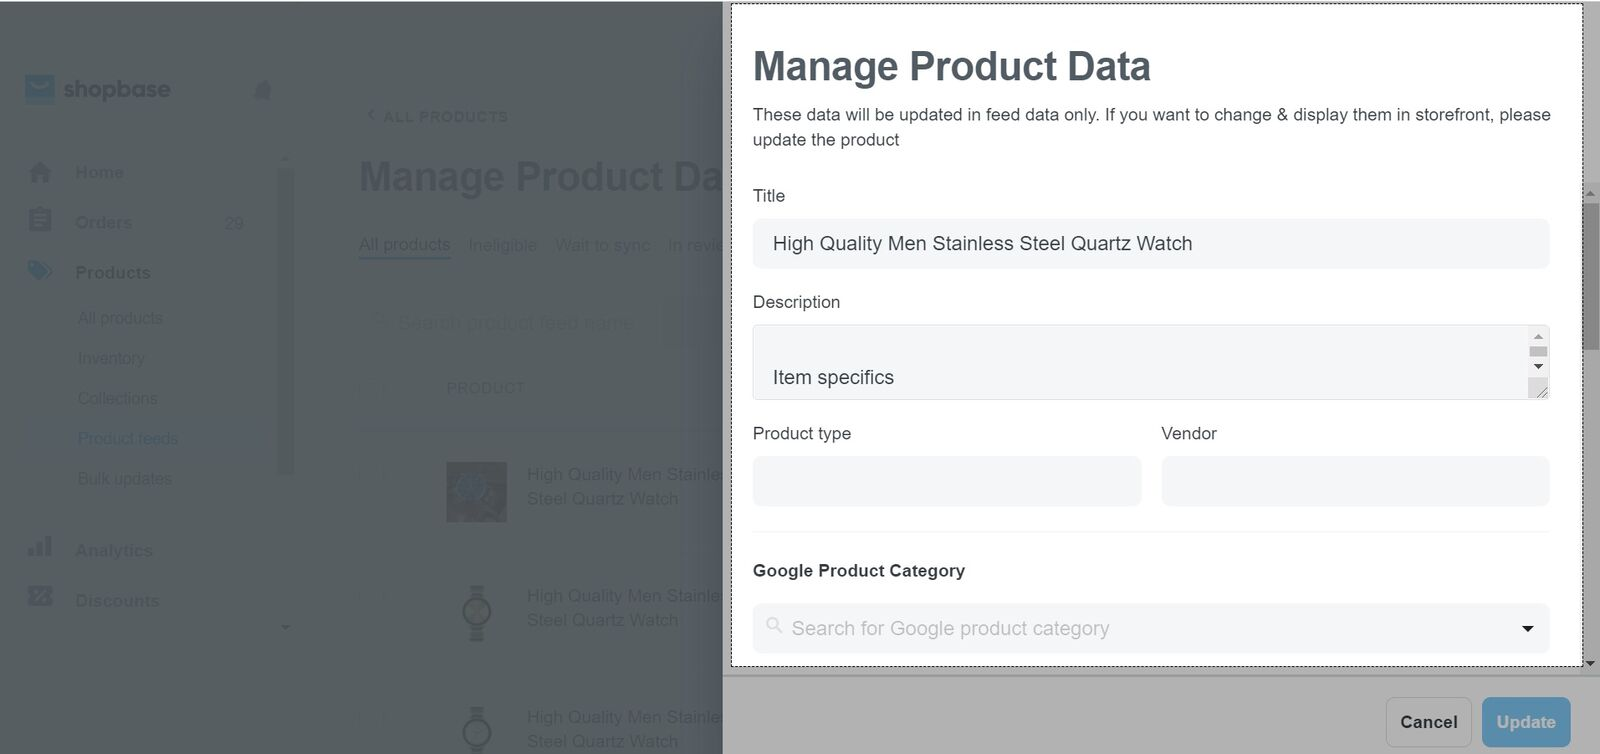 A popup window will appear if you click on each product where you can edit product information and click Update